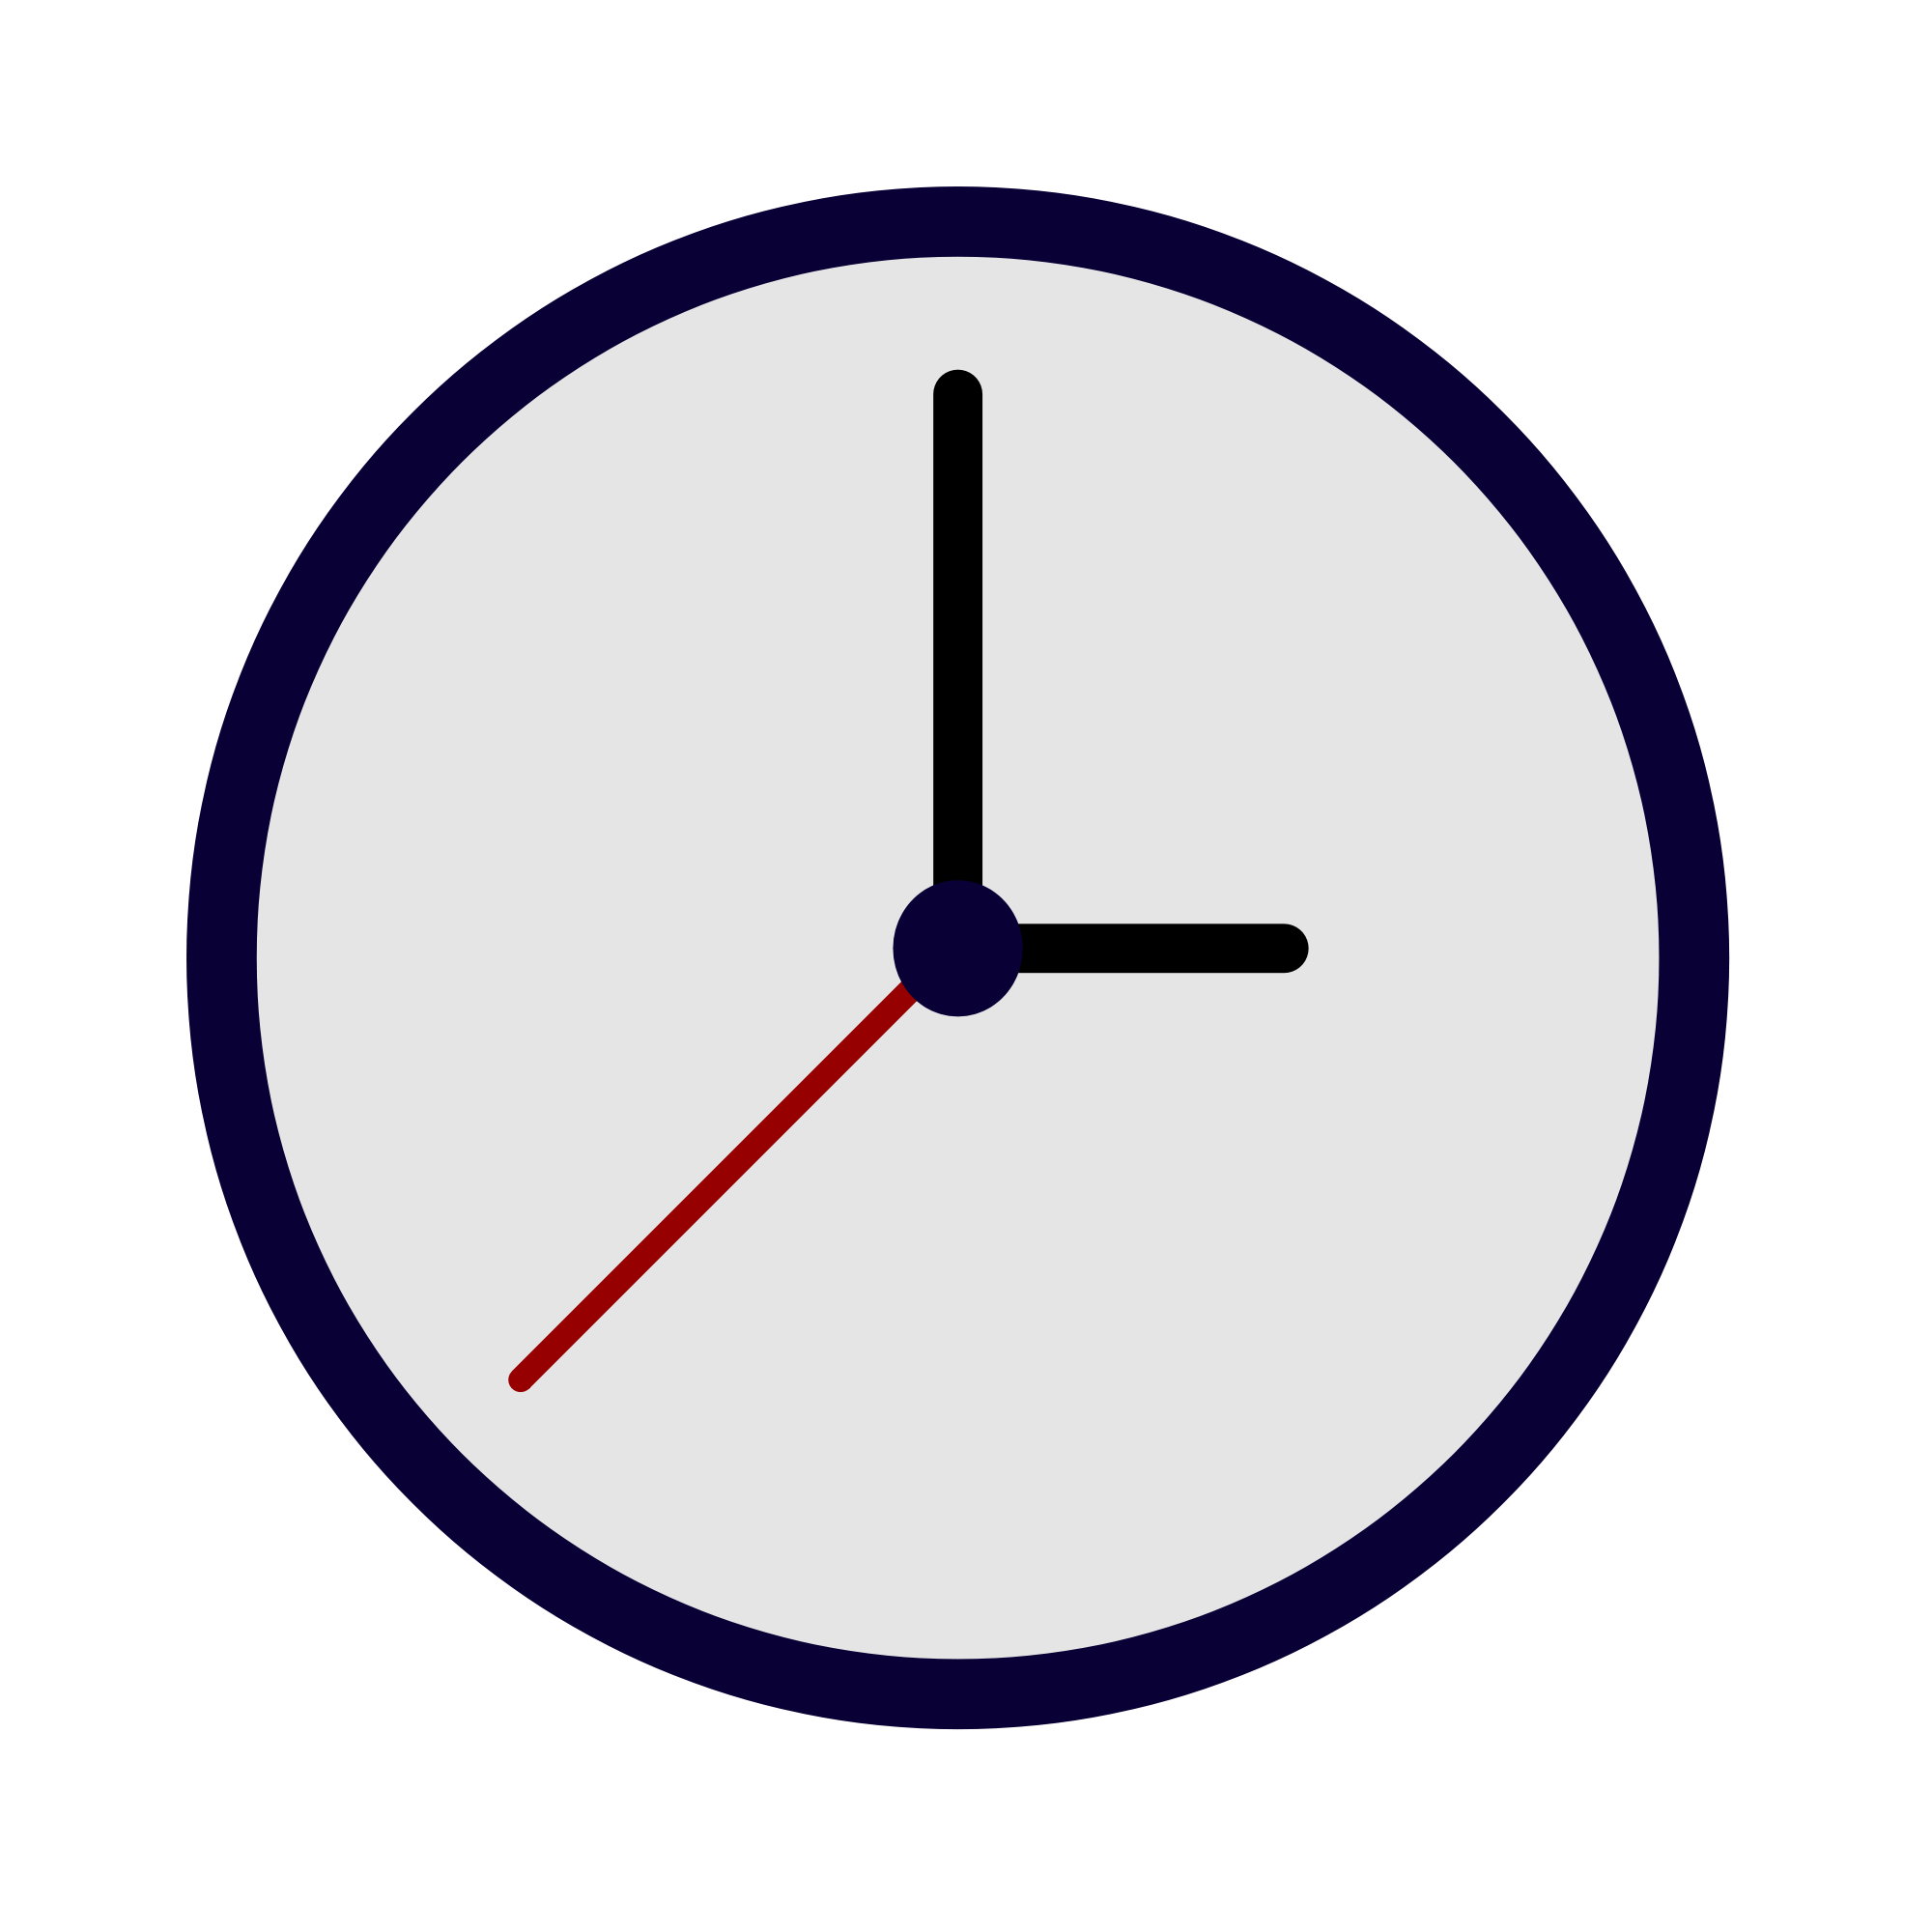 Clock svg #12, Download drawings